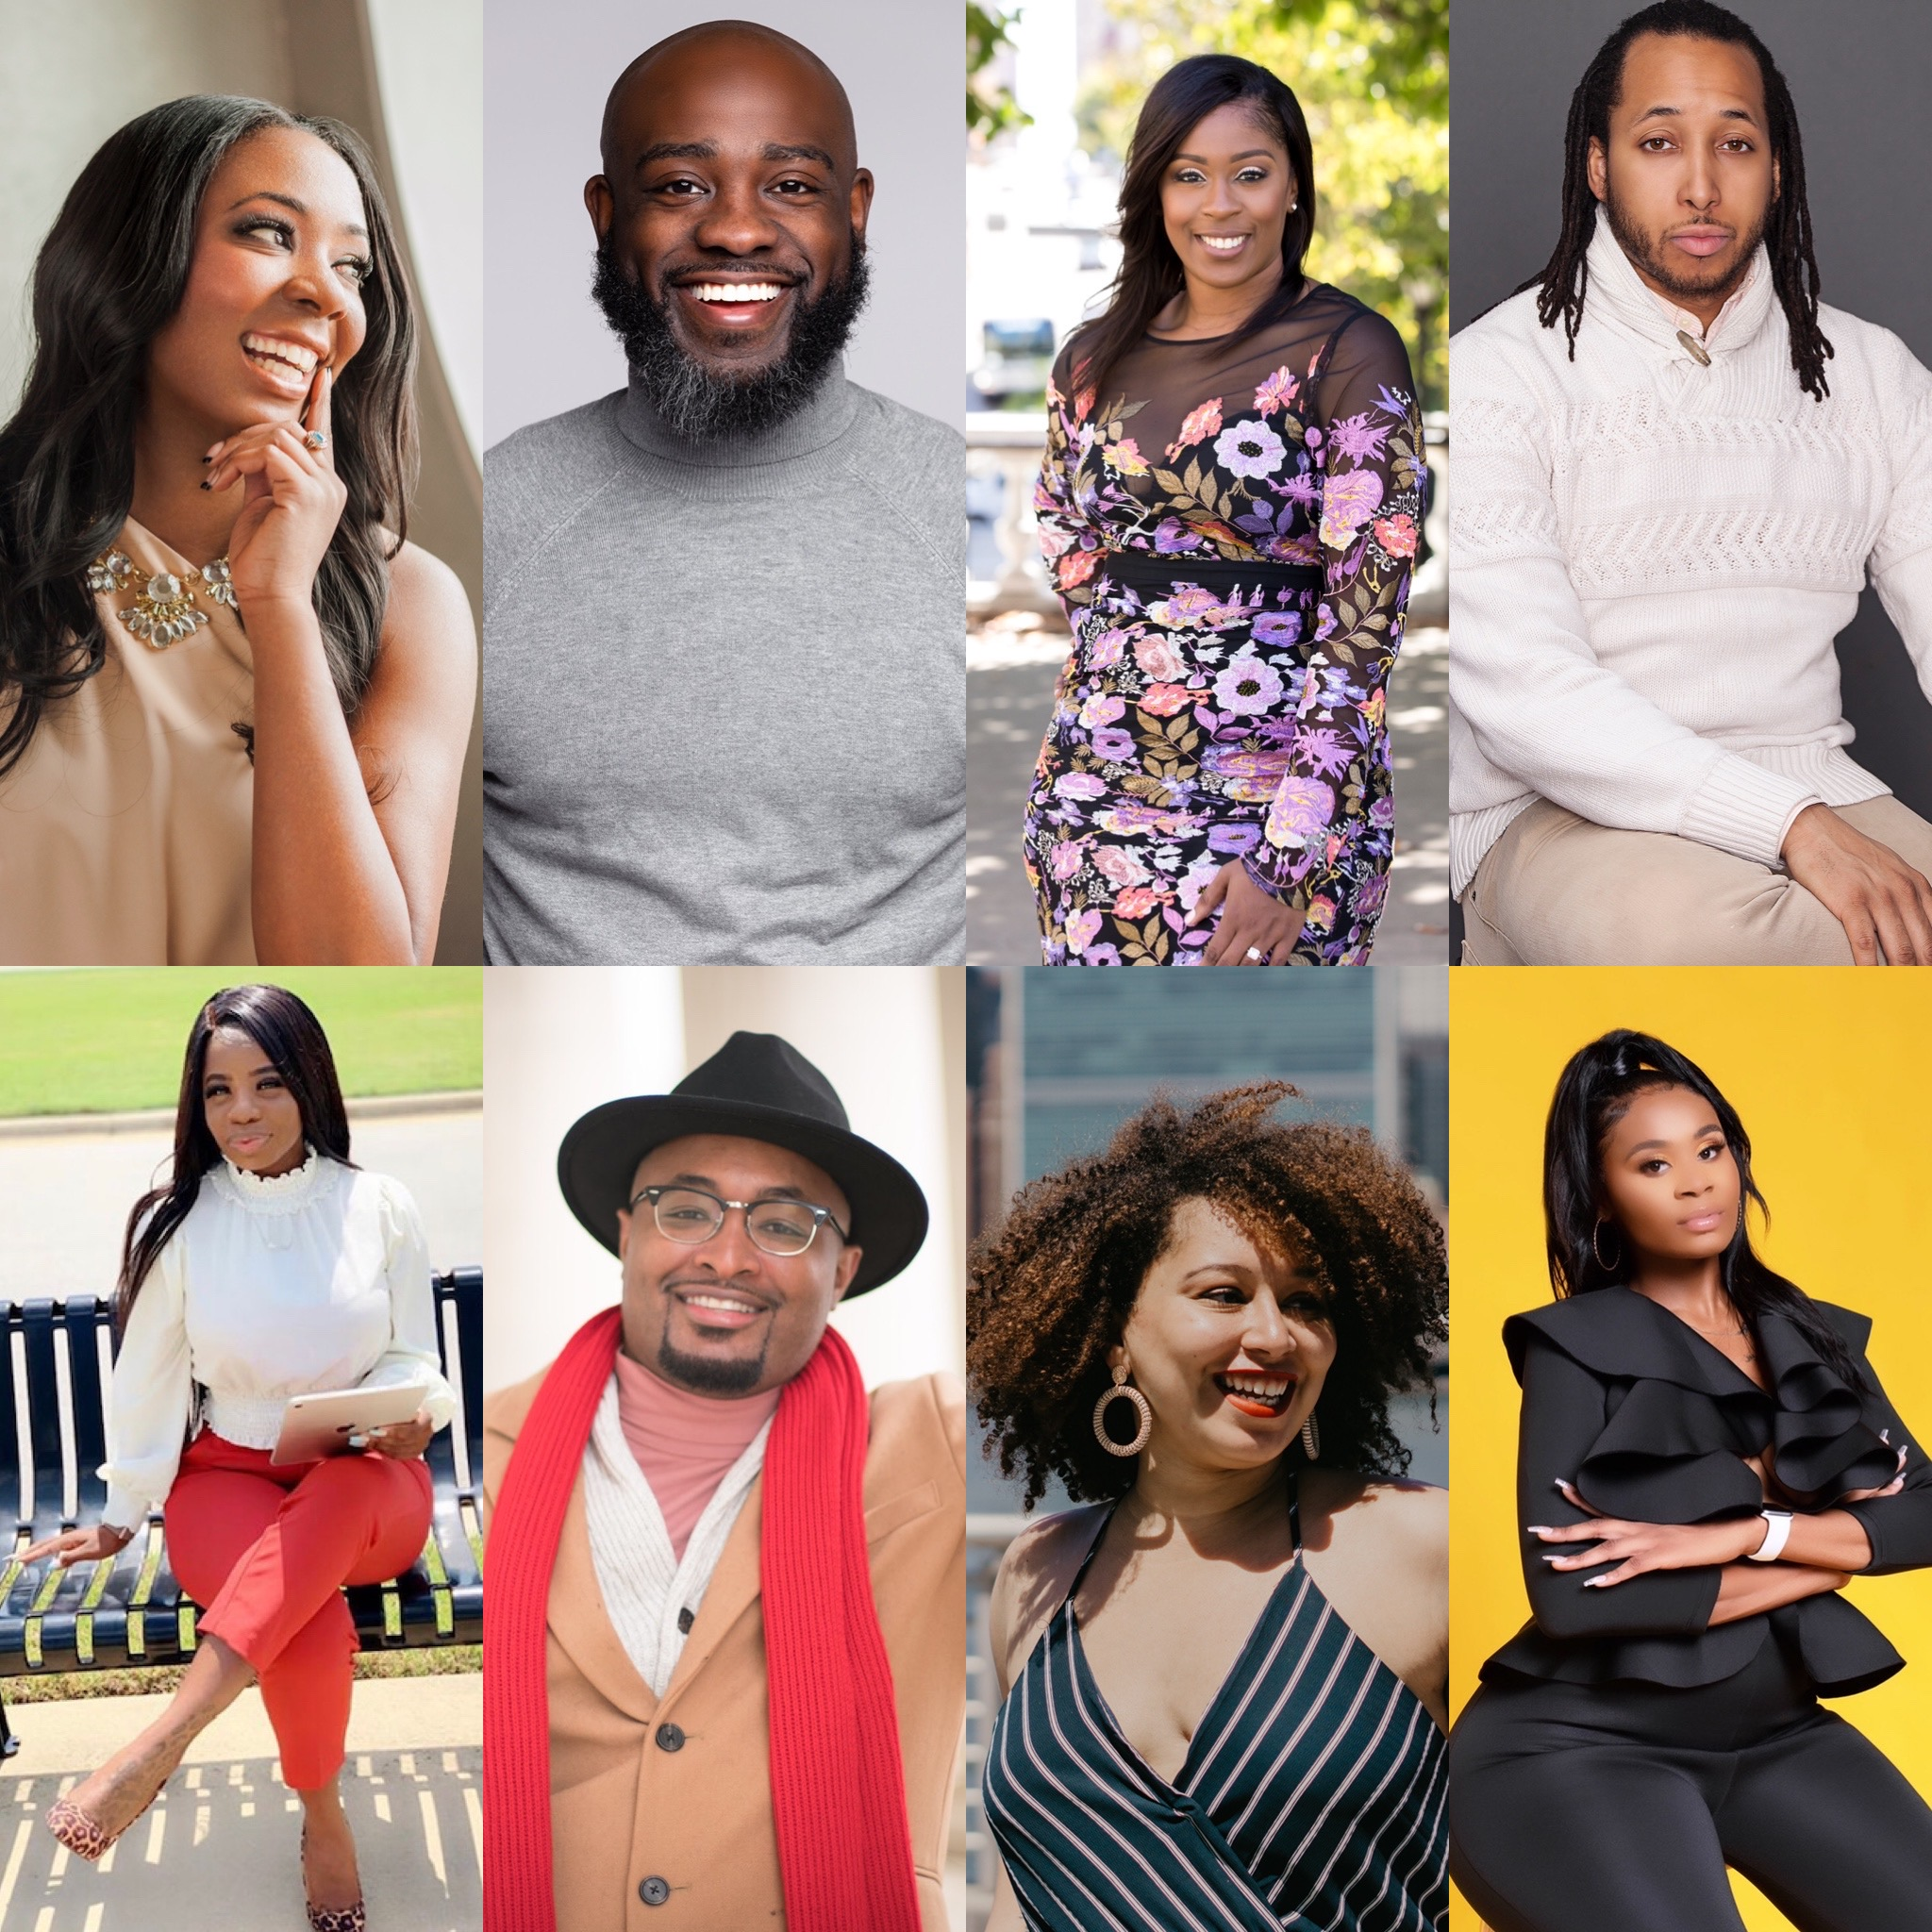 These 8 Black millennial CEOs do *this* every morning to be successful